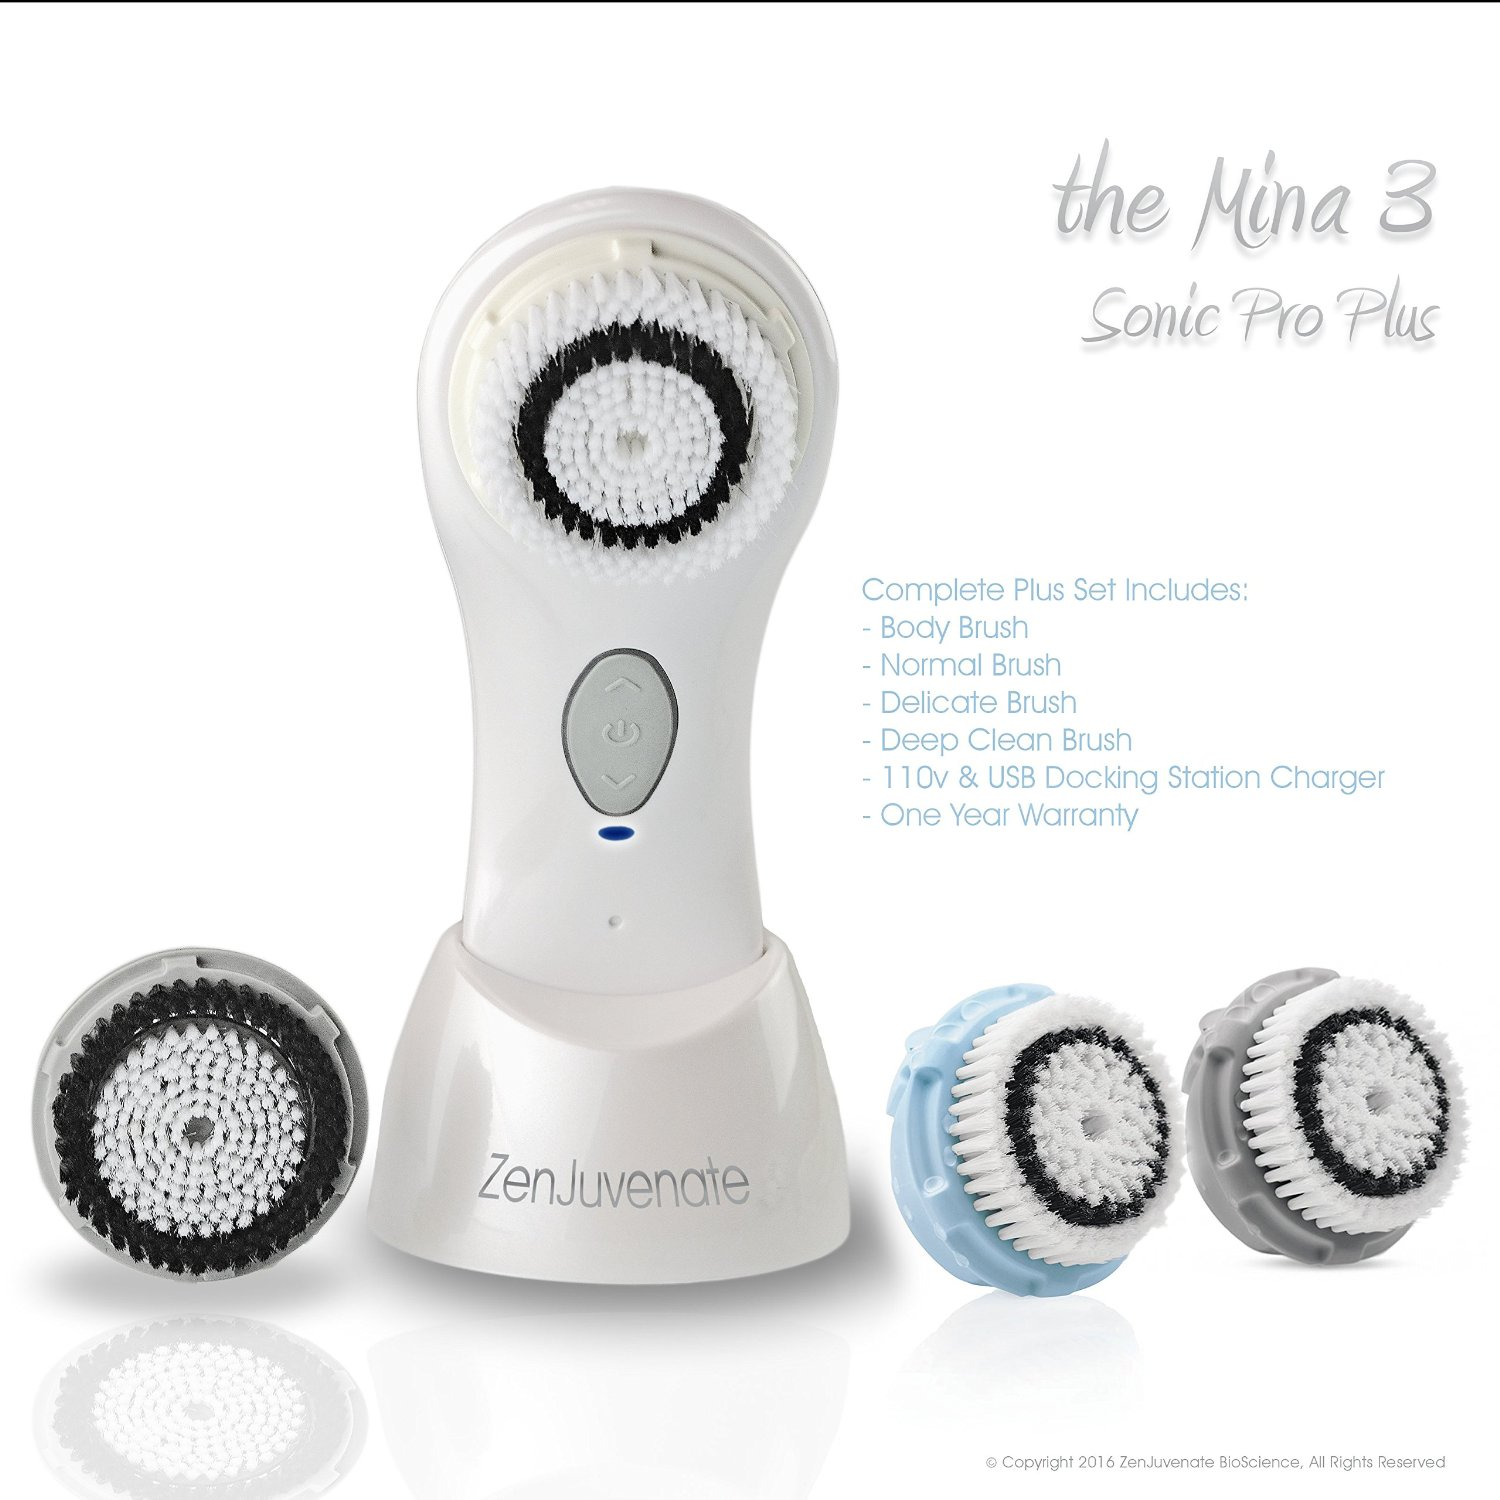 Mina 3 PLUS Sonic Skin Cleansing Brush System, Micro Dermabrasion 1 Year Warranty, Power Electric Rechargeable Facial Brush Facial Cleaning System by Zenjuvenate